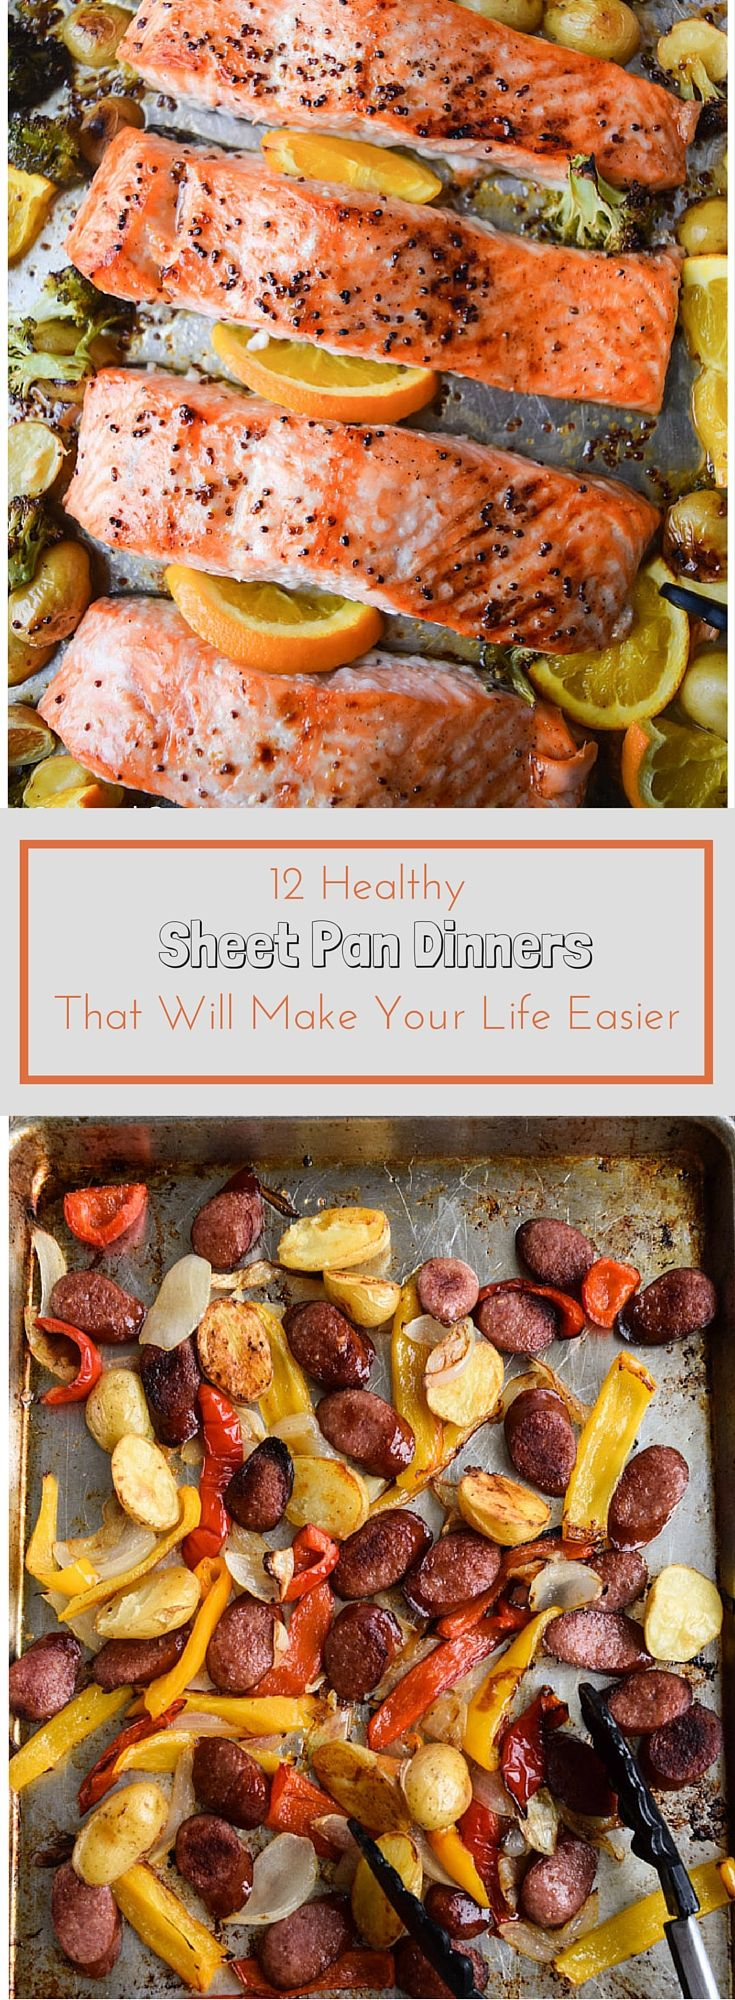 12 Healthy Sheet Pan Dinners That Will Make Your Life Easier Buzzfeed